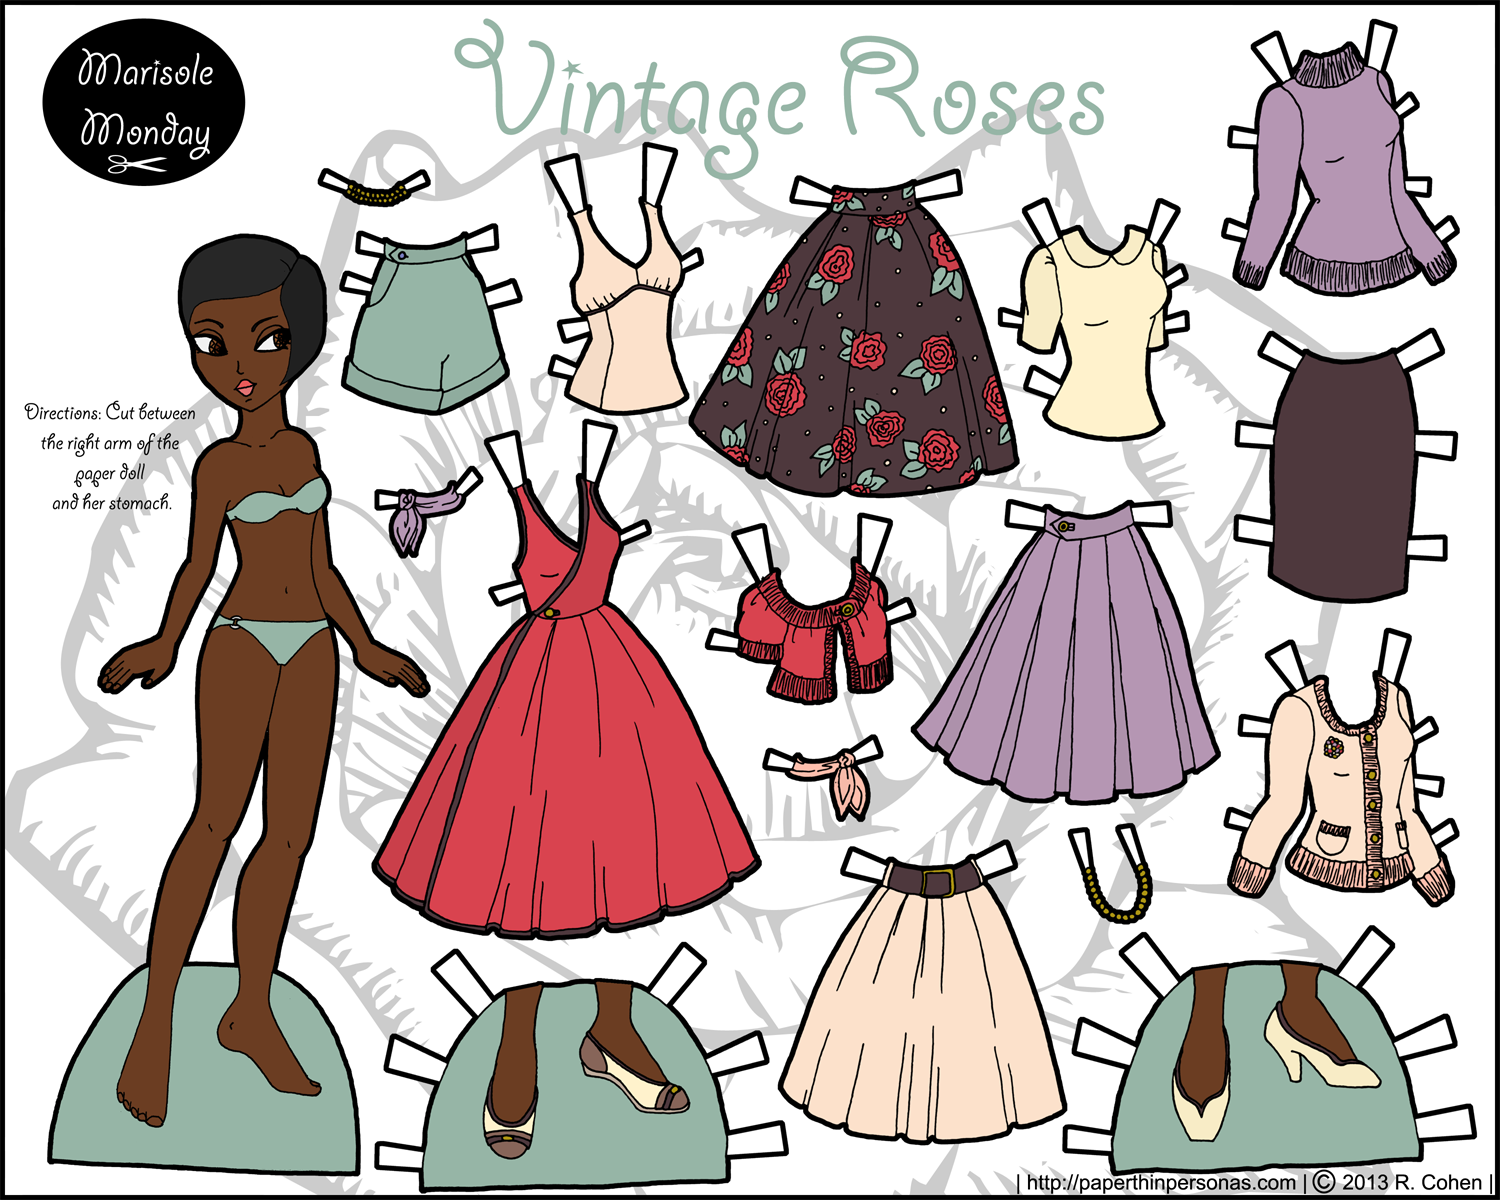 marisole monday vintage roses in pinks and browns and purples dolls paper dolls paper. Black Bedroom Furniture Sets. Home Design Ideas